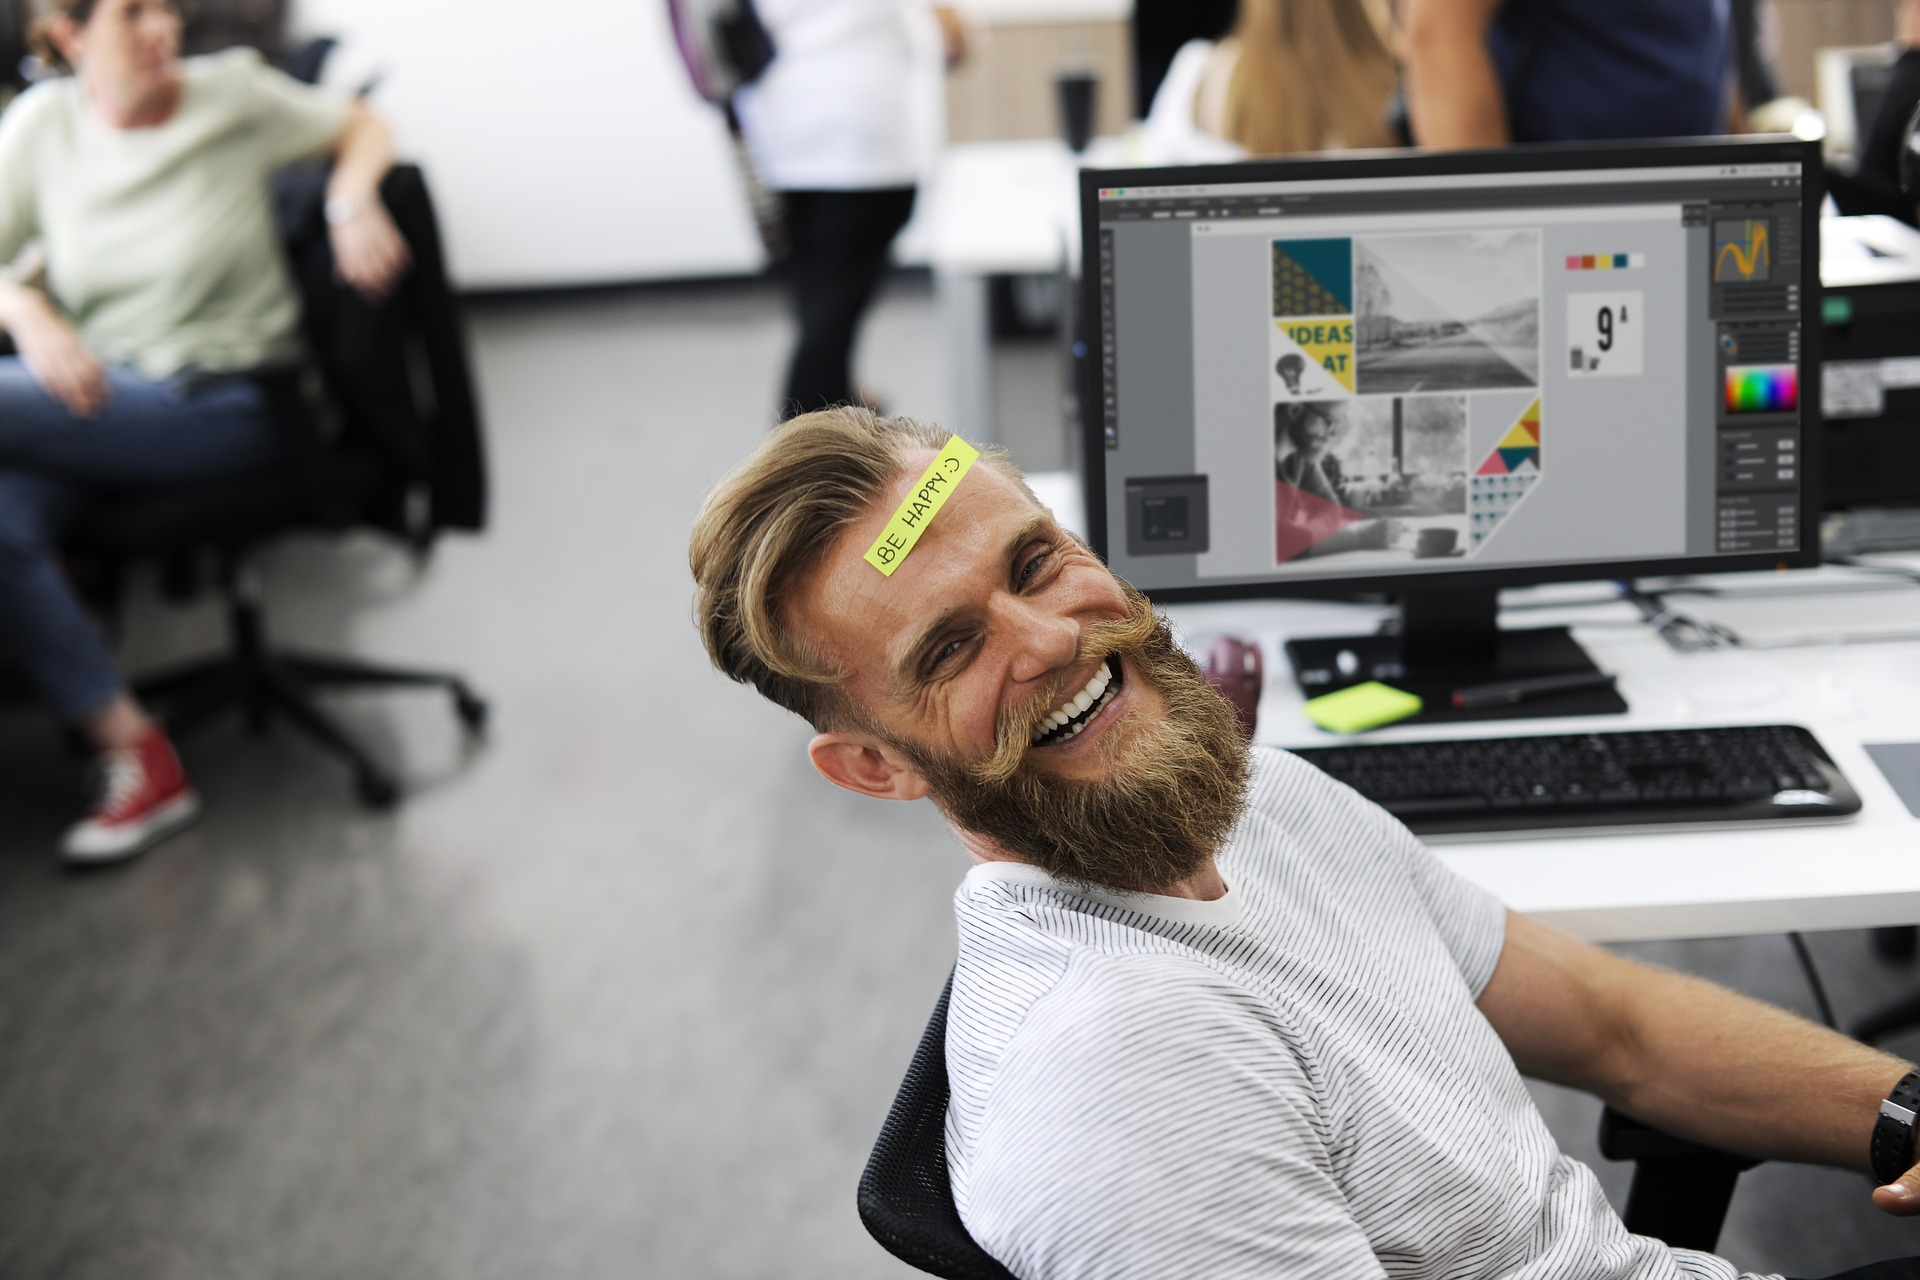 A man sitting in an open office setting  in front of his computer laughing with a note stuck to his head. Starting a business in Utah for the absolute beginner, man in office smiling